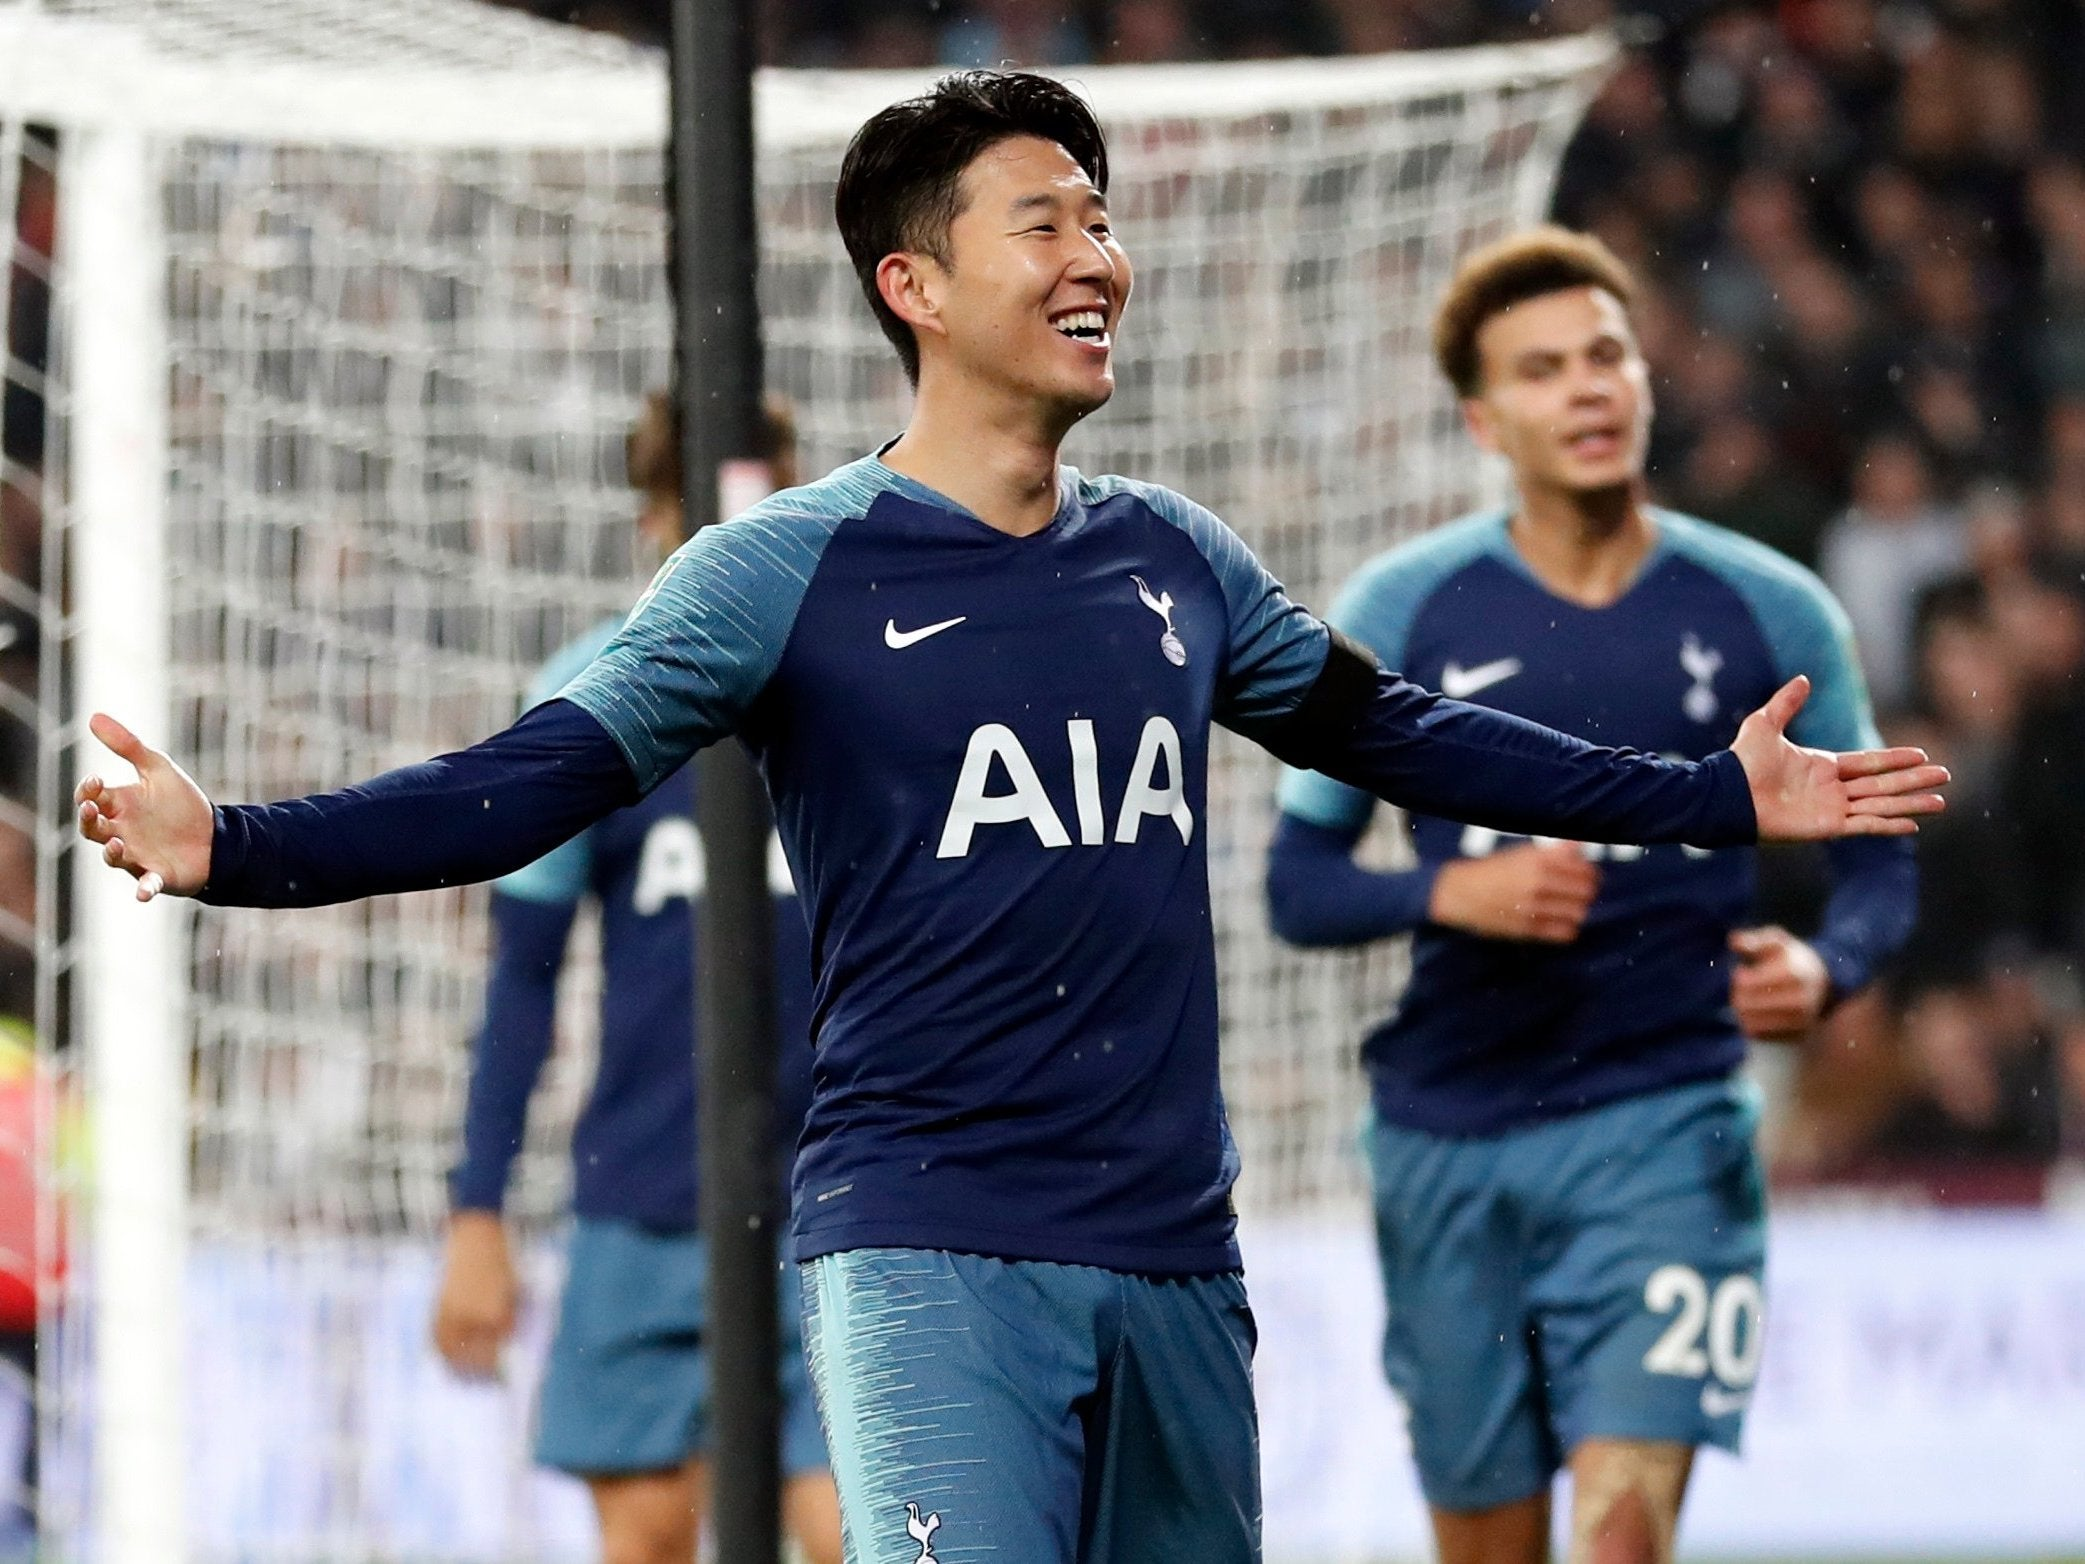 Son heung min relieved to end goal drought after firing for Son heung min squadre attuali